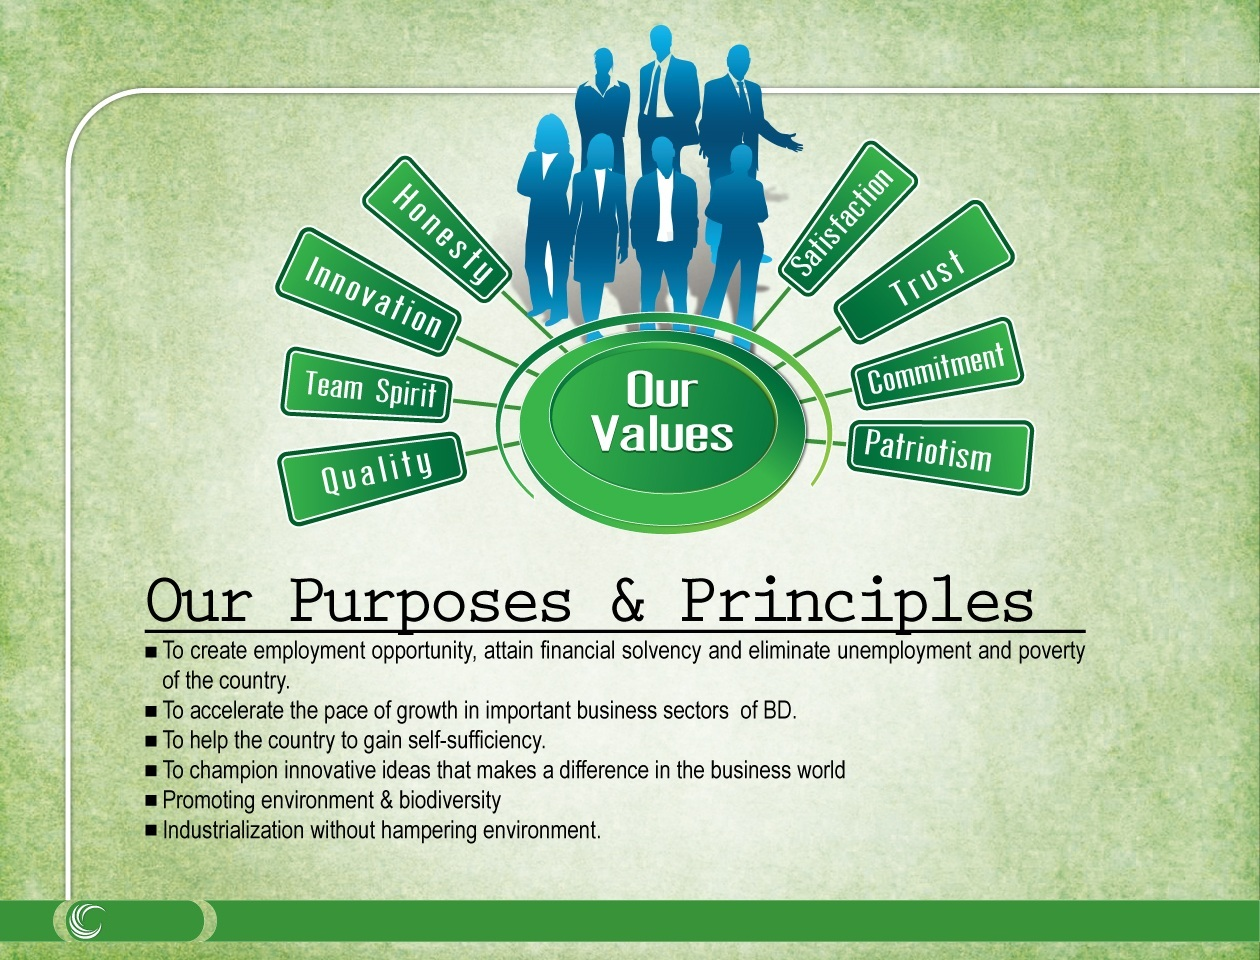 Values & Principle